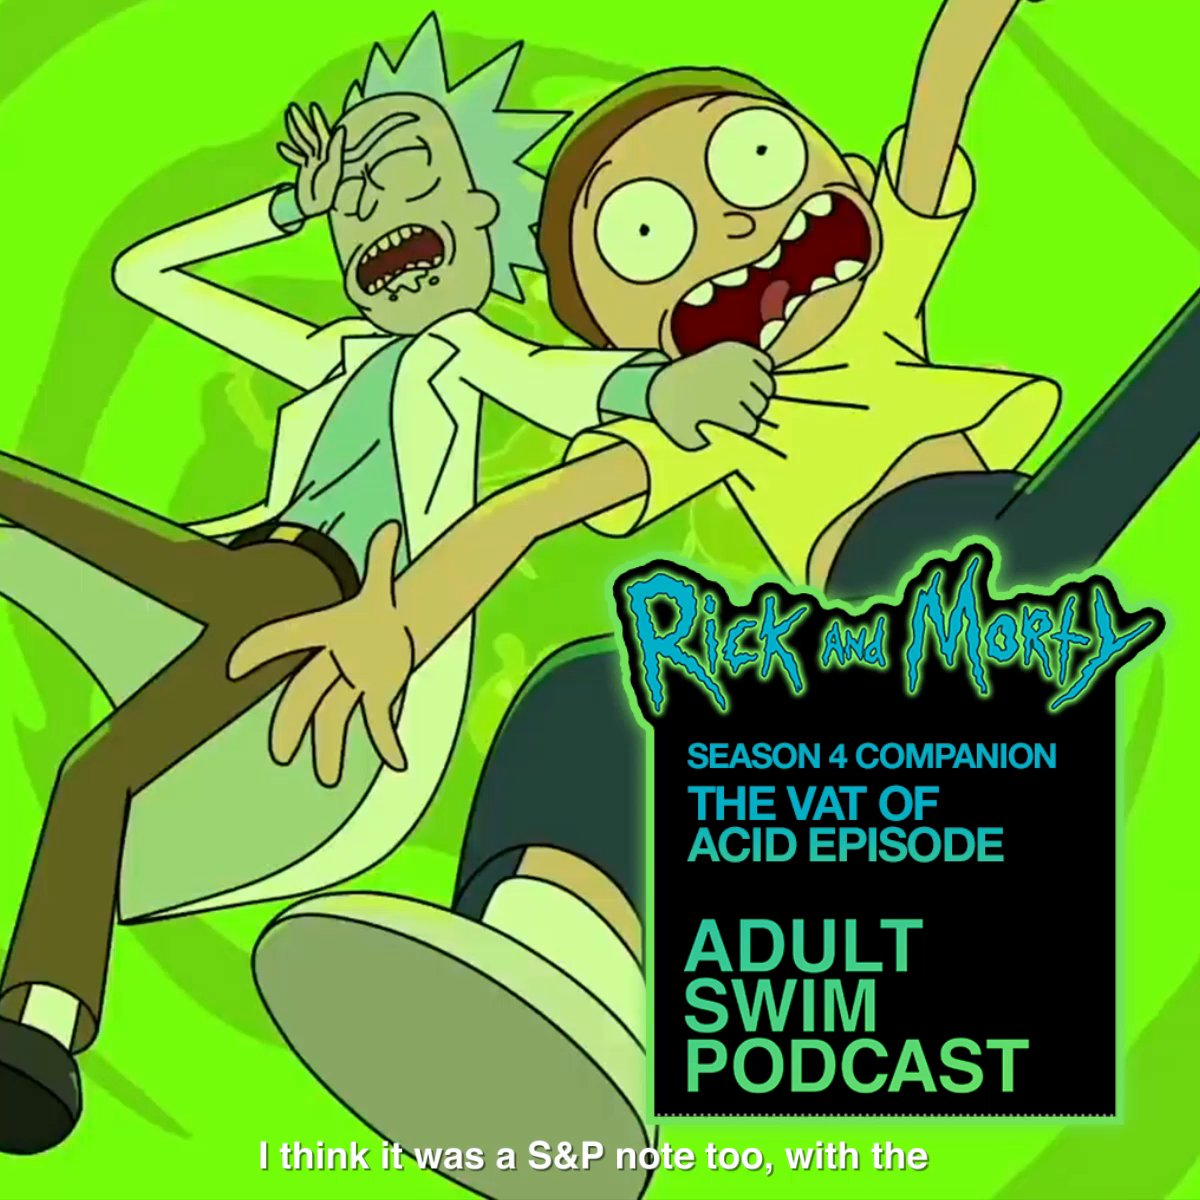 The writer, director and artists who made The Vat of Acid Episode take viewer calls and answer questions about bottle episodes, time travel fantasies, and Easter eggs. adultswim.com/podcast/episod…